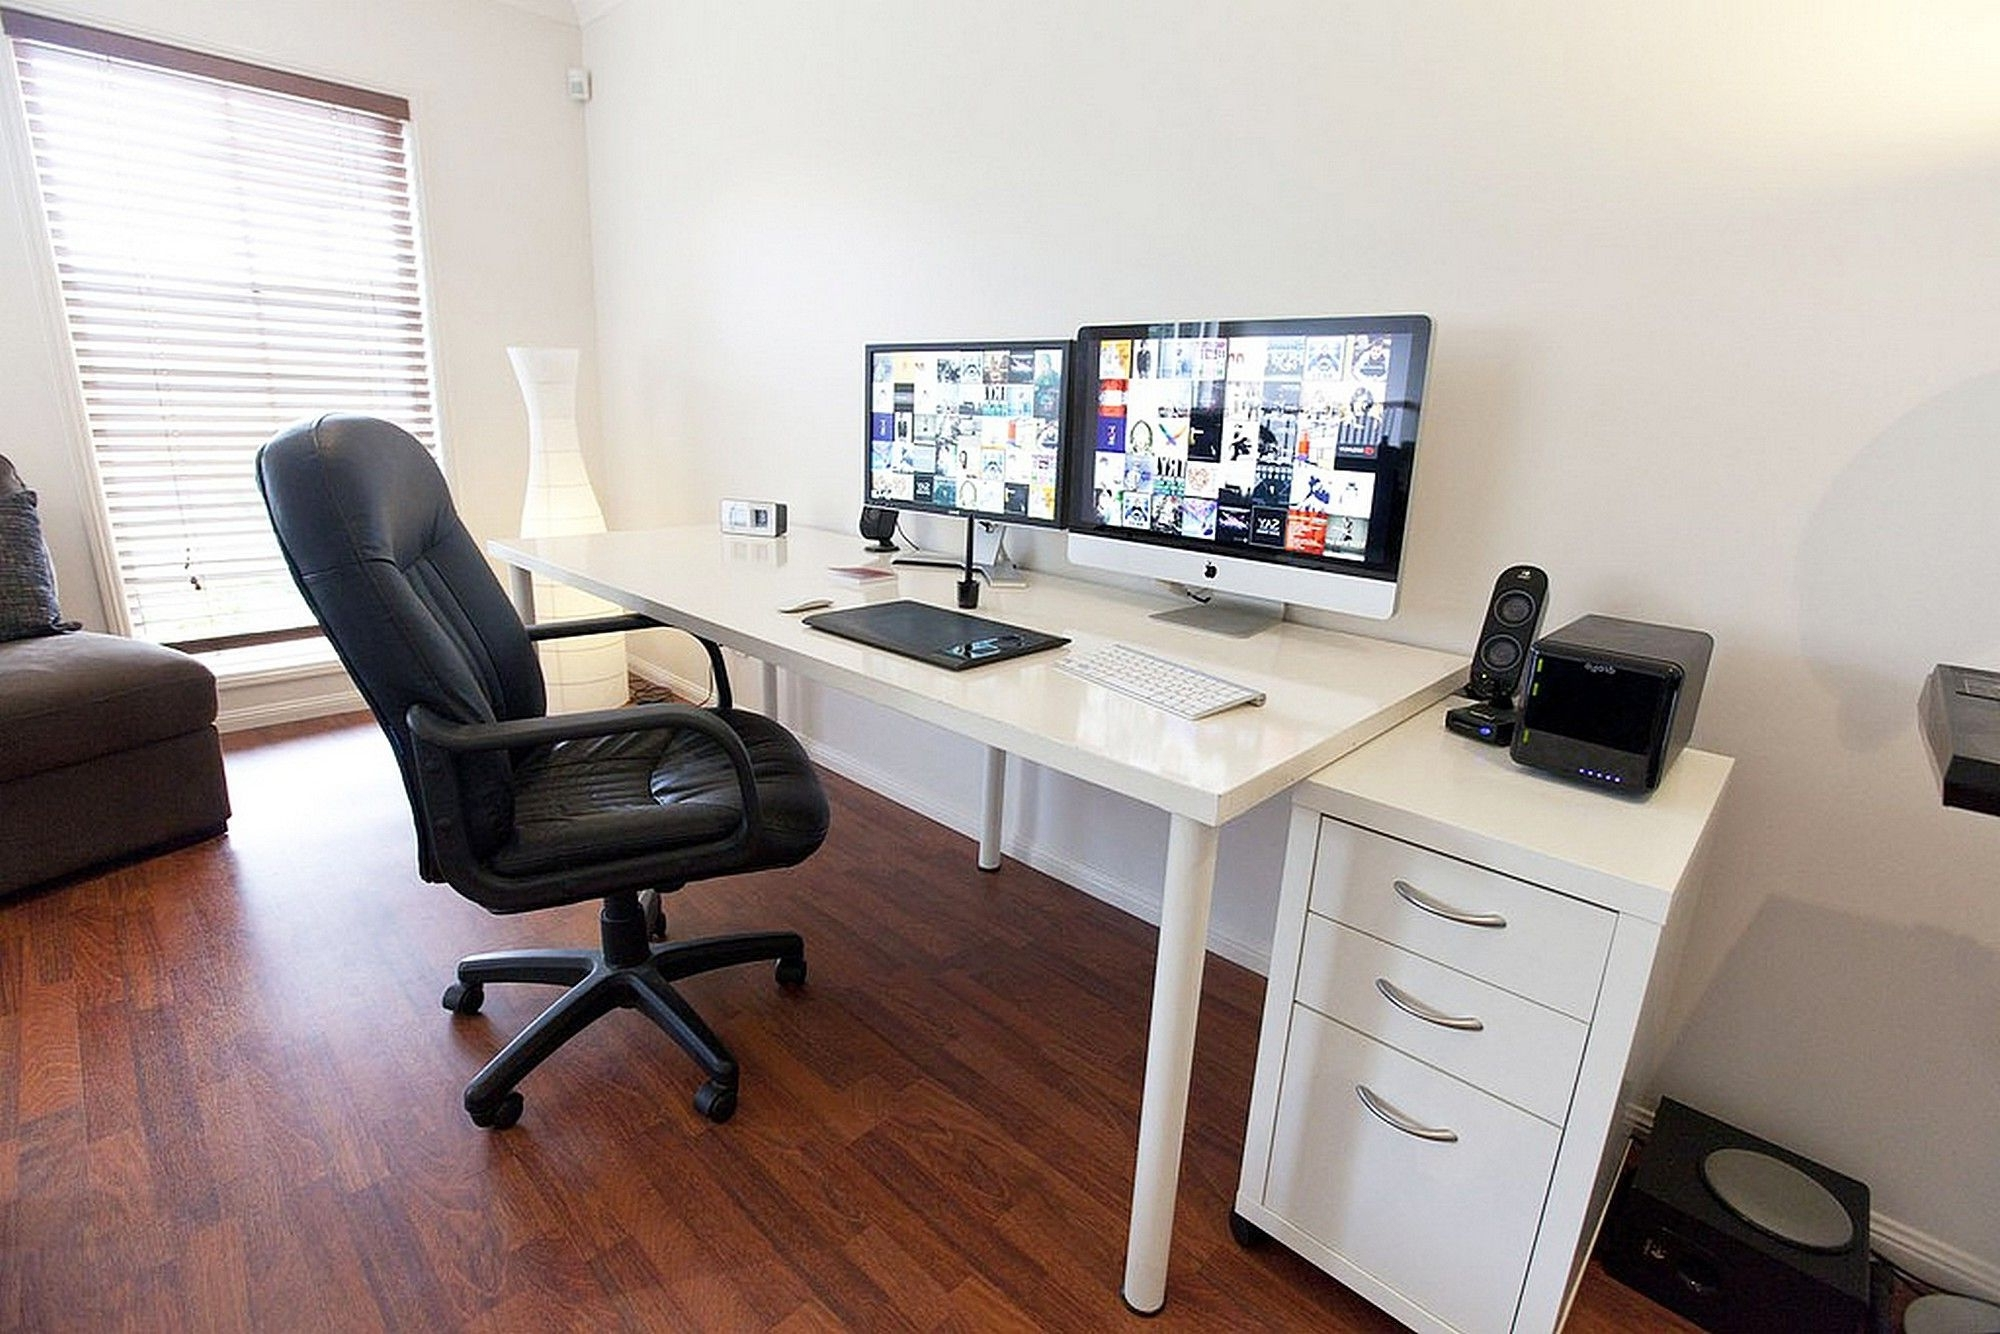 Ikea Linnmon Adils Computer Desk Setup With Drawer For Dual With 2018 Computer Desks For Two Monitors (View 14 of 20)